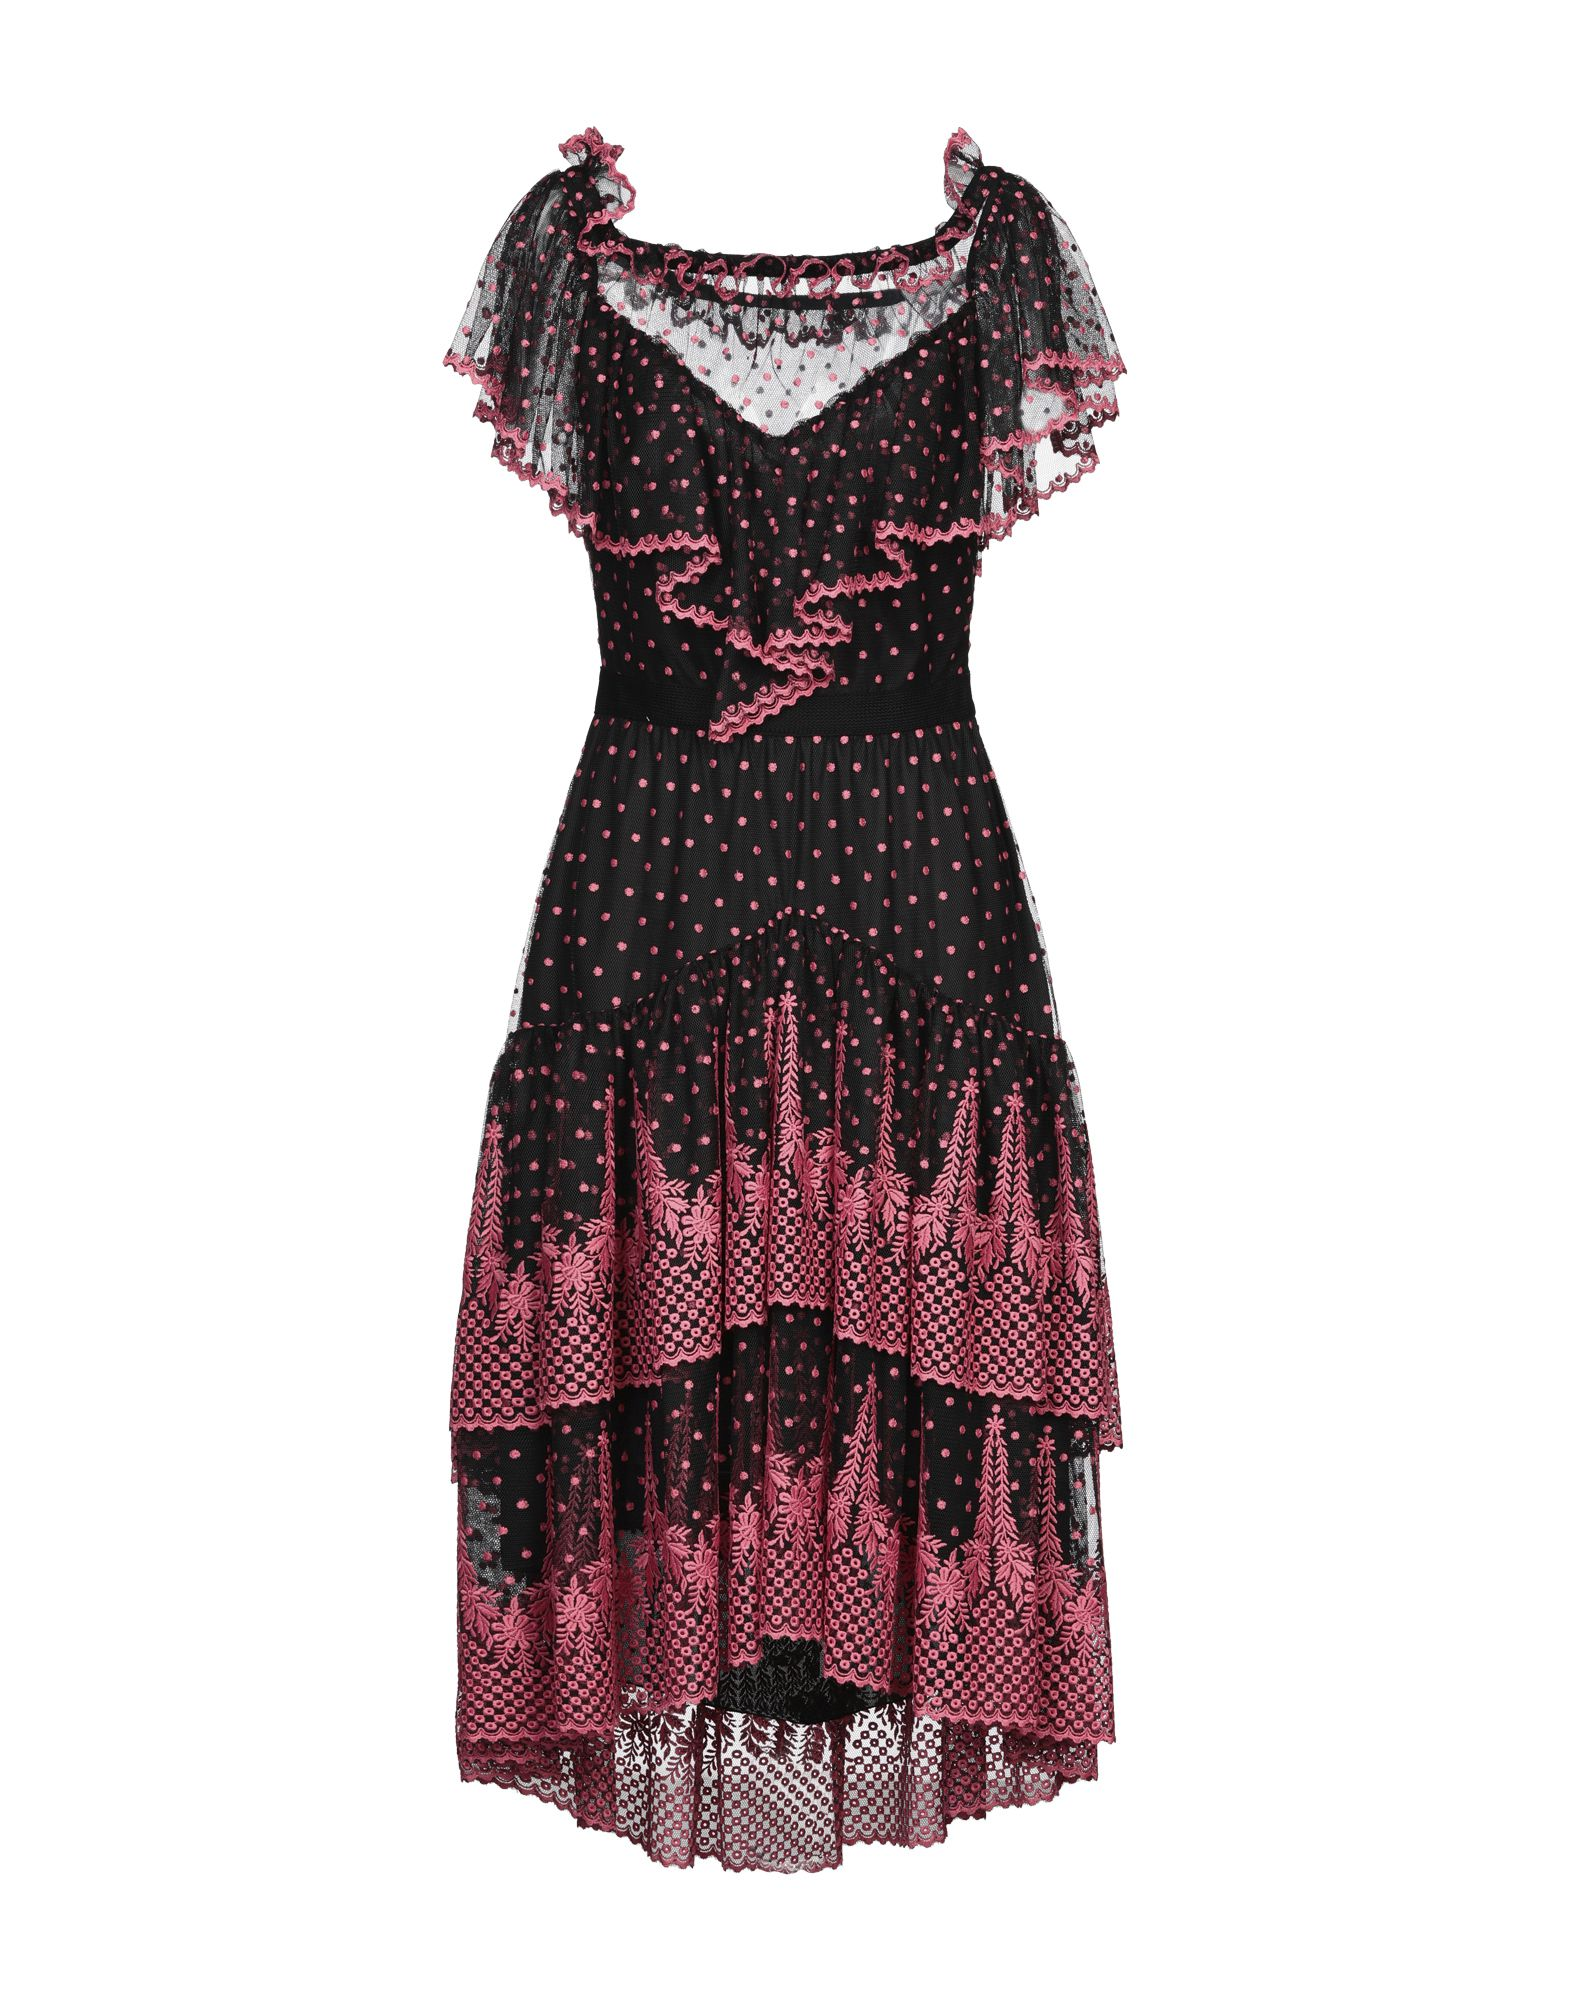 PHILOSOPHY di LORENZO SERAFINI 3/4 length dresses. polka dots, wide neckline, ruffles, short sleeves, no pockets, side closure, zip, fully lined, tulle, dress. 100% Polyester